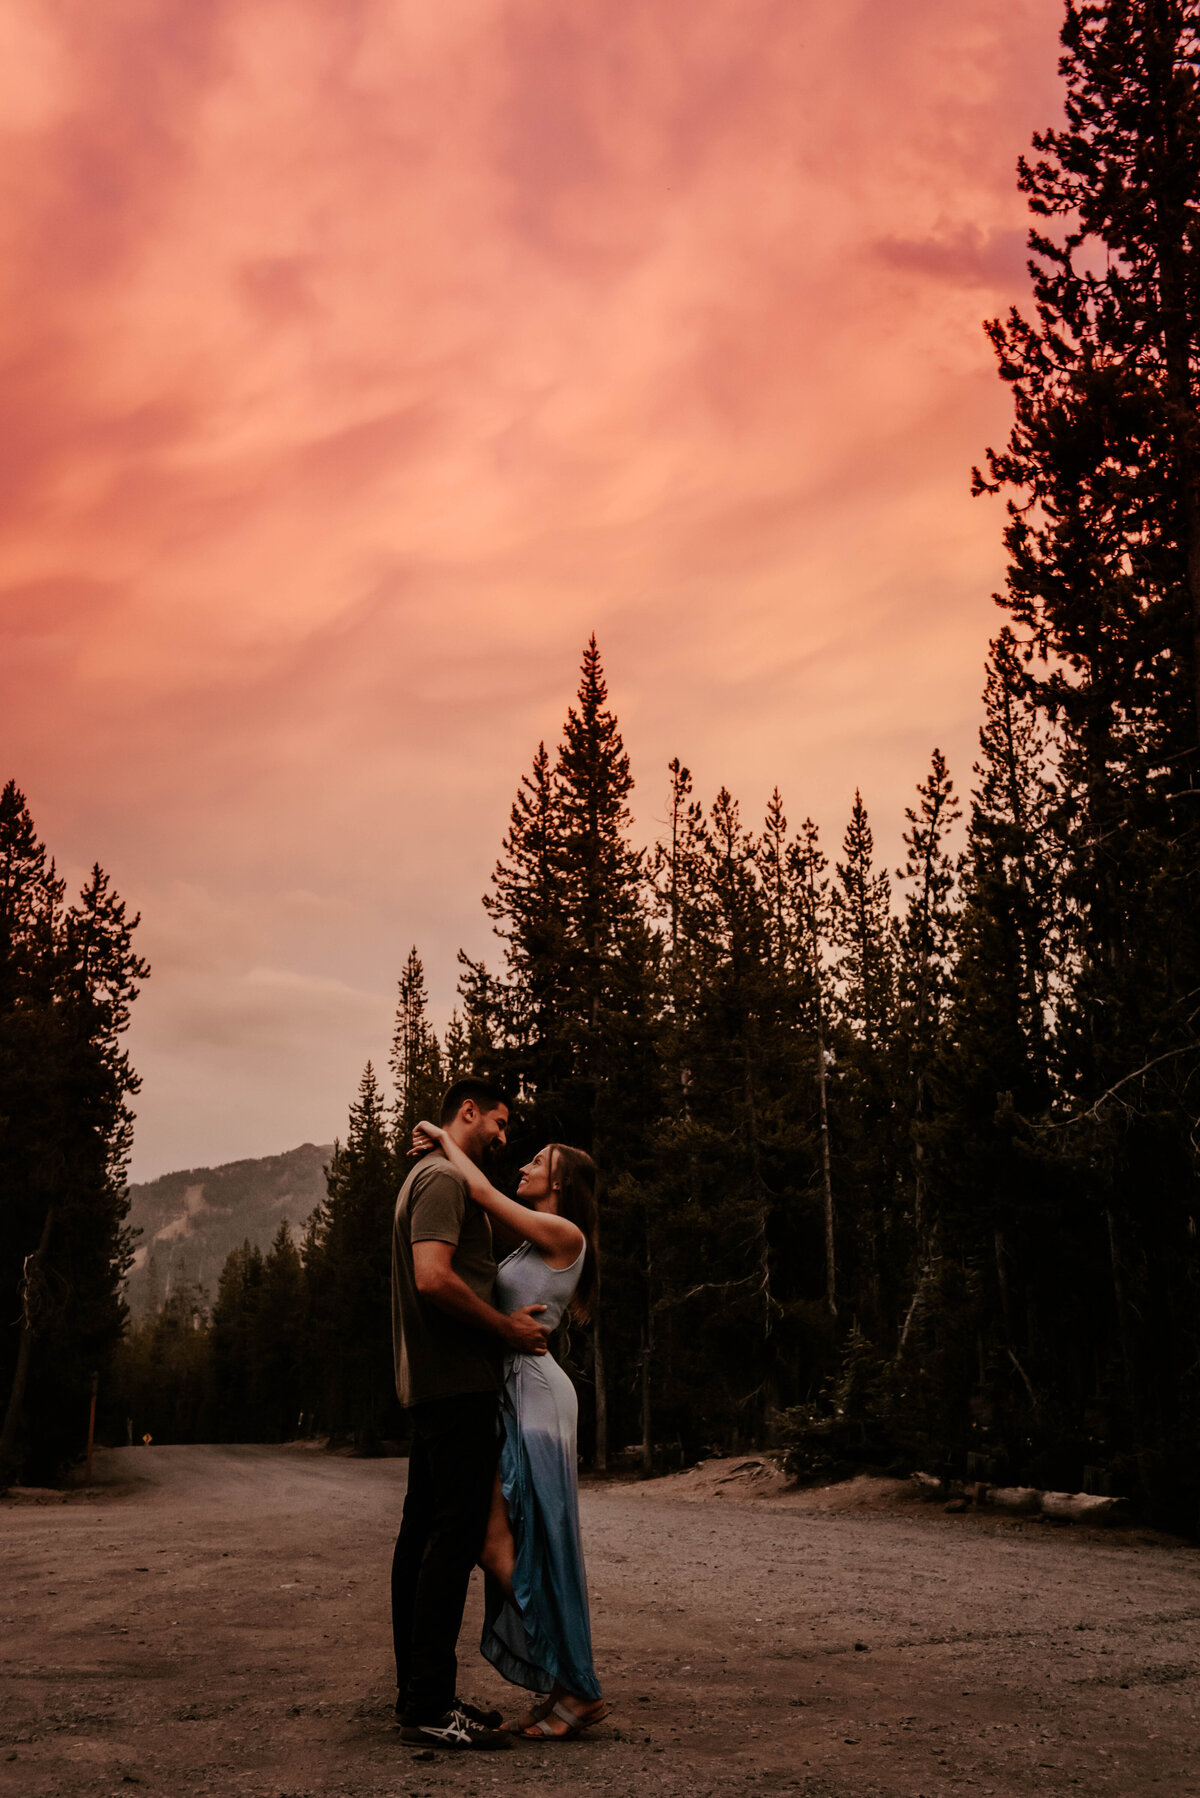 sparks-lake-oregon-couple-photographer-elopement-bend-lakes-bachelor-sisters-sunset-6368-2